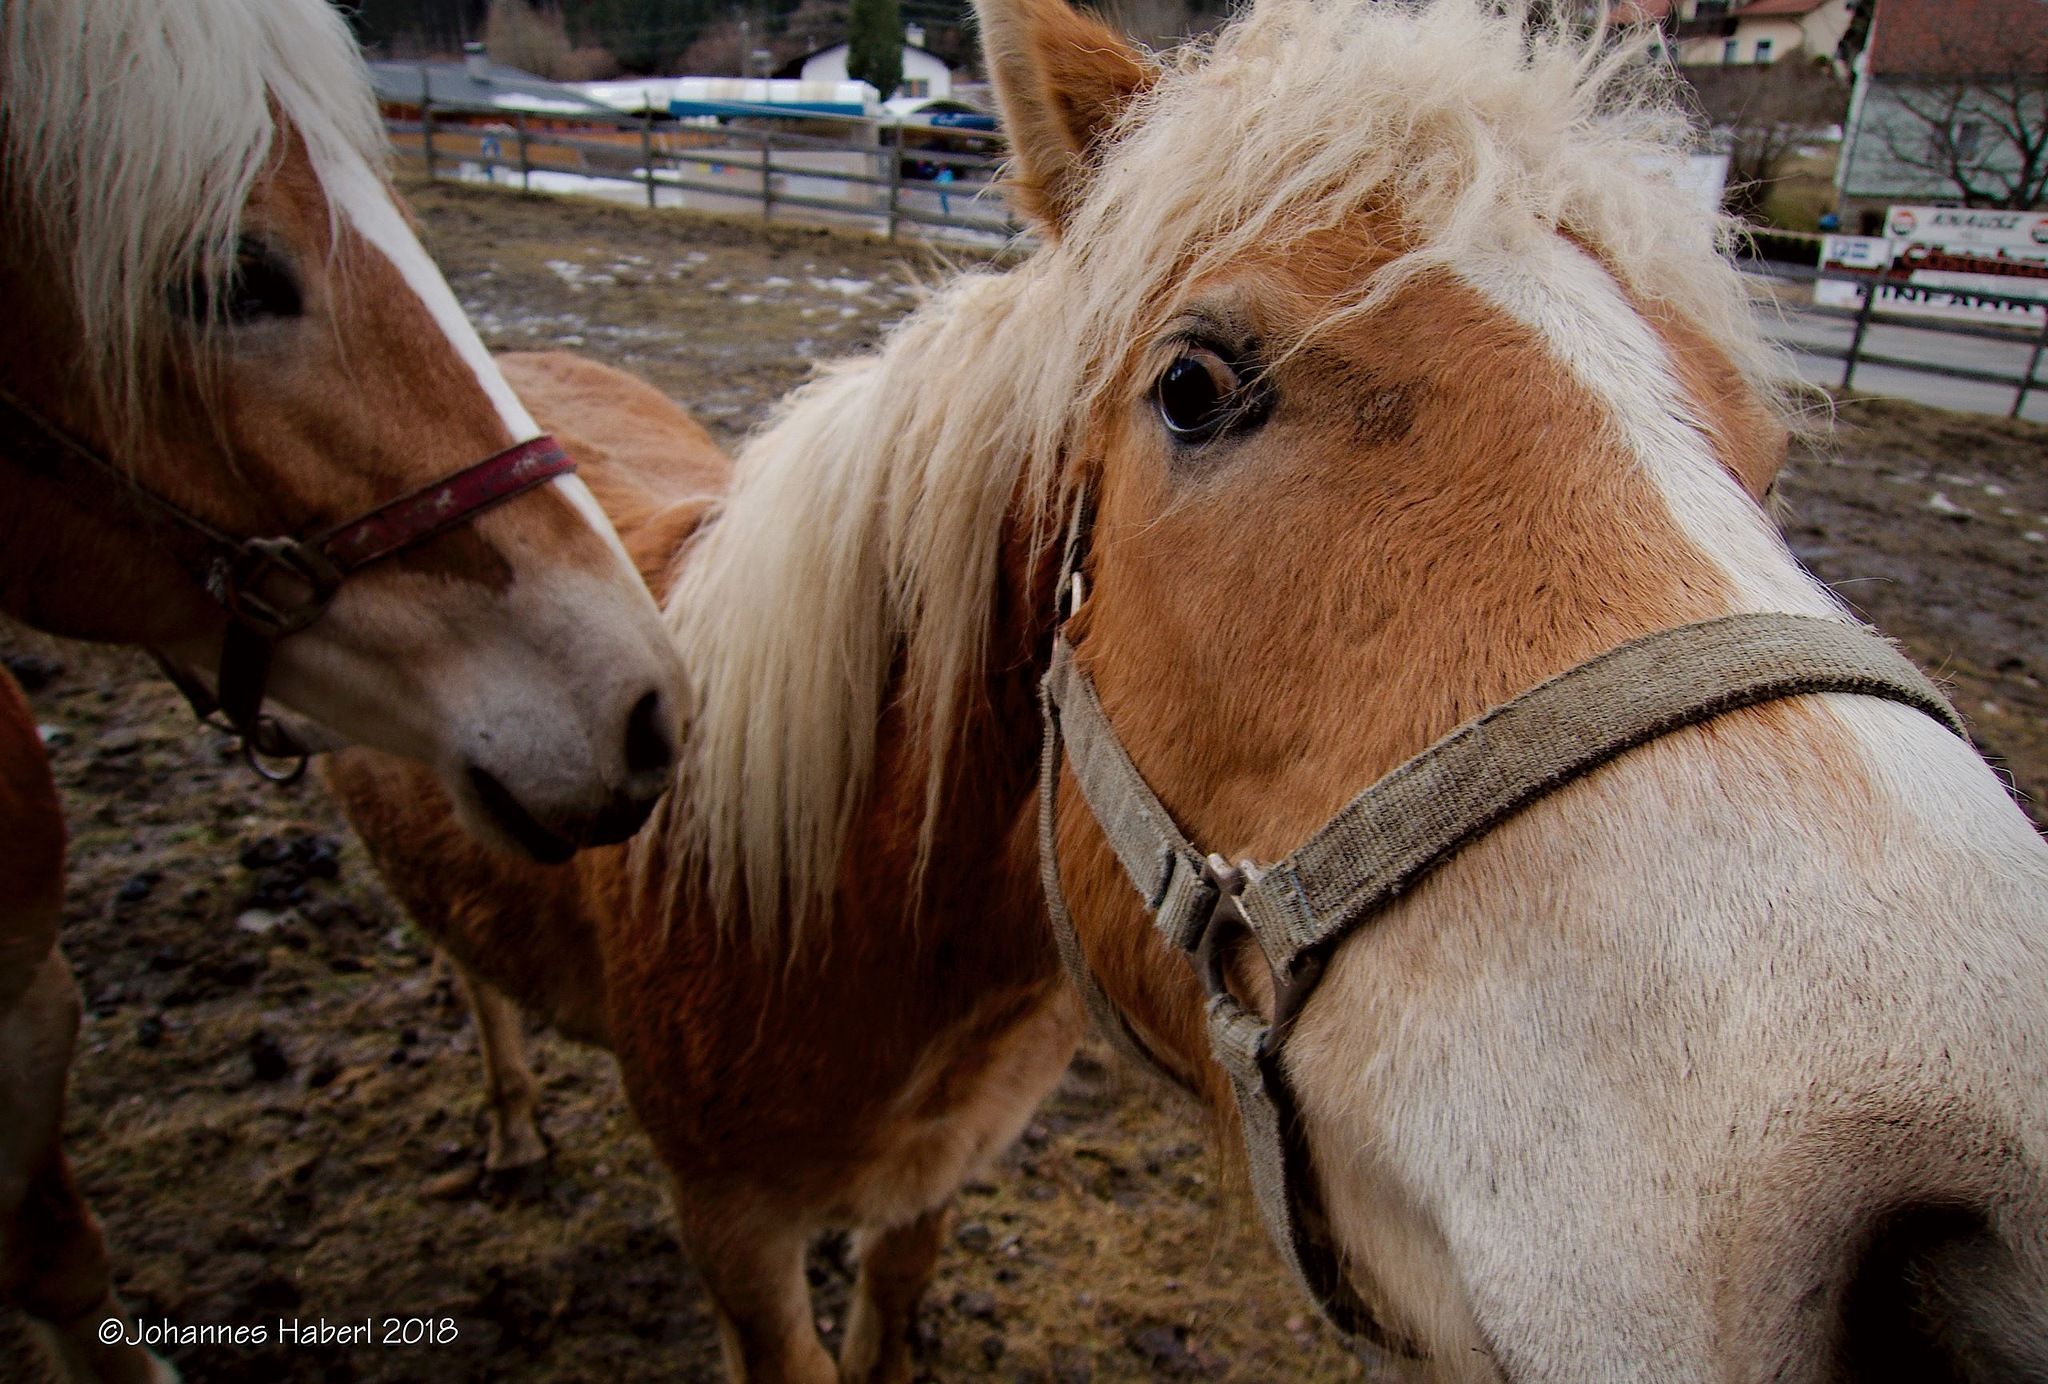 horses, curious about the camera by Johannes Haberl